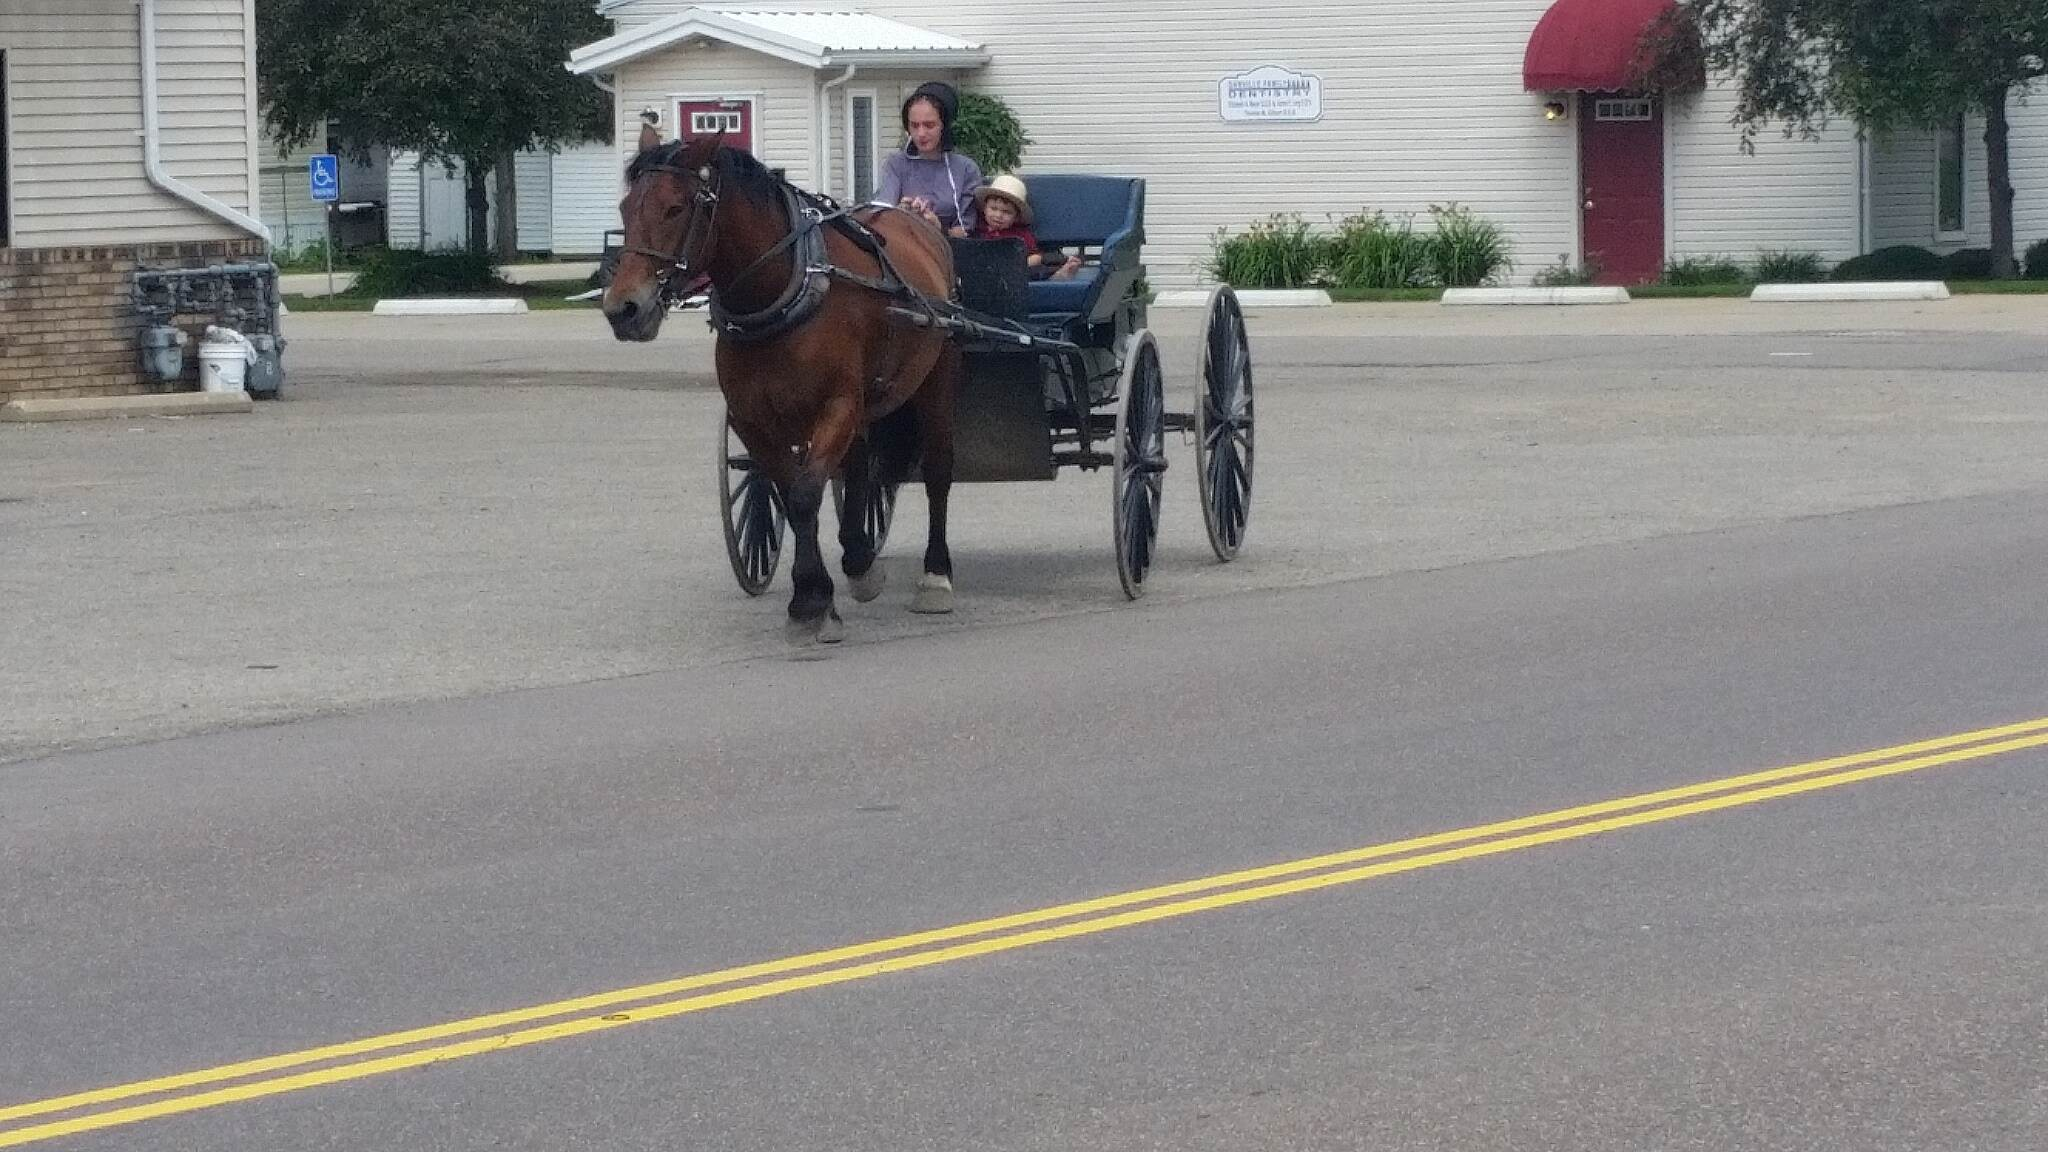 Kokosing Gap Trail Danville saw this Amish buggy from restaurant in Danville at E end of trail